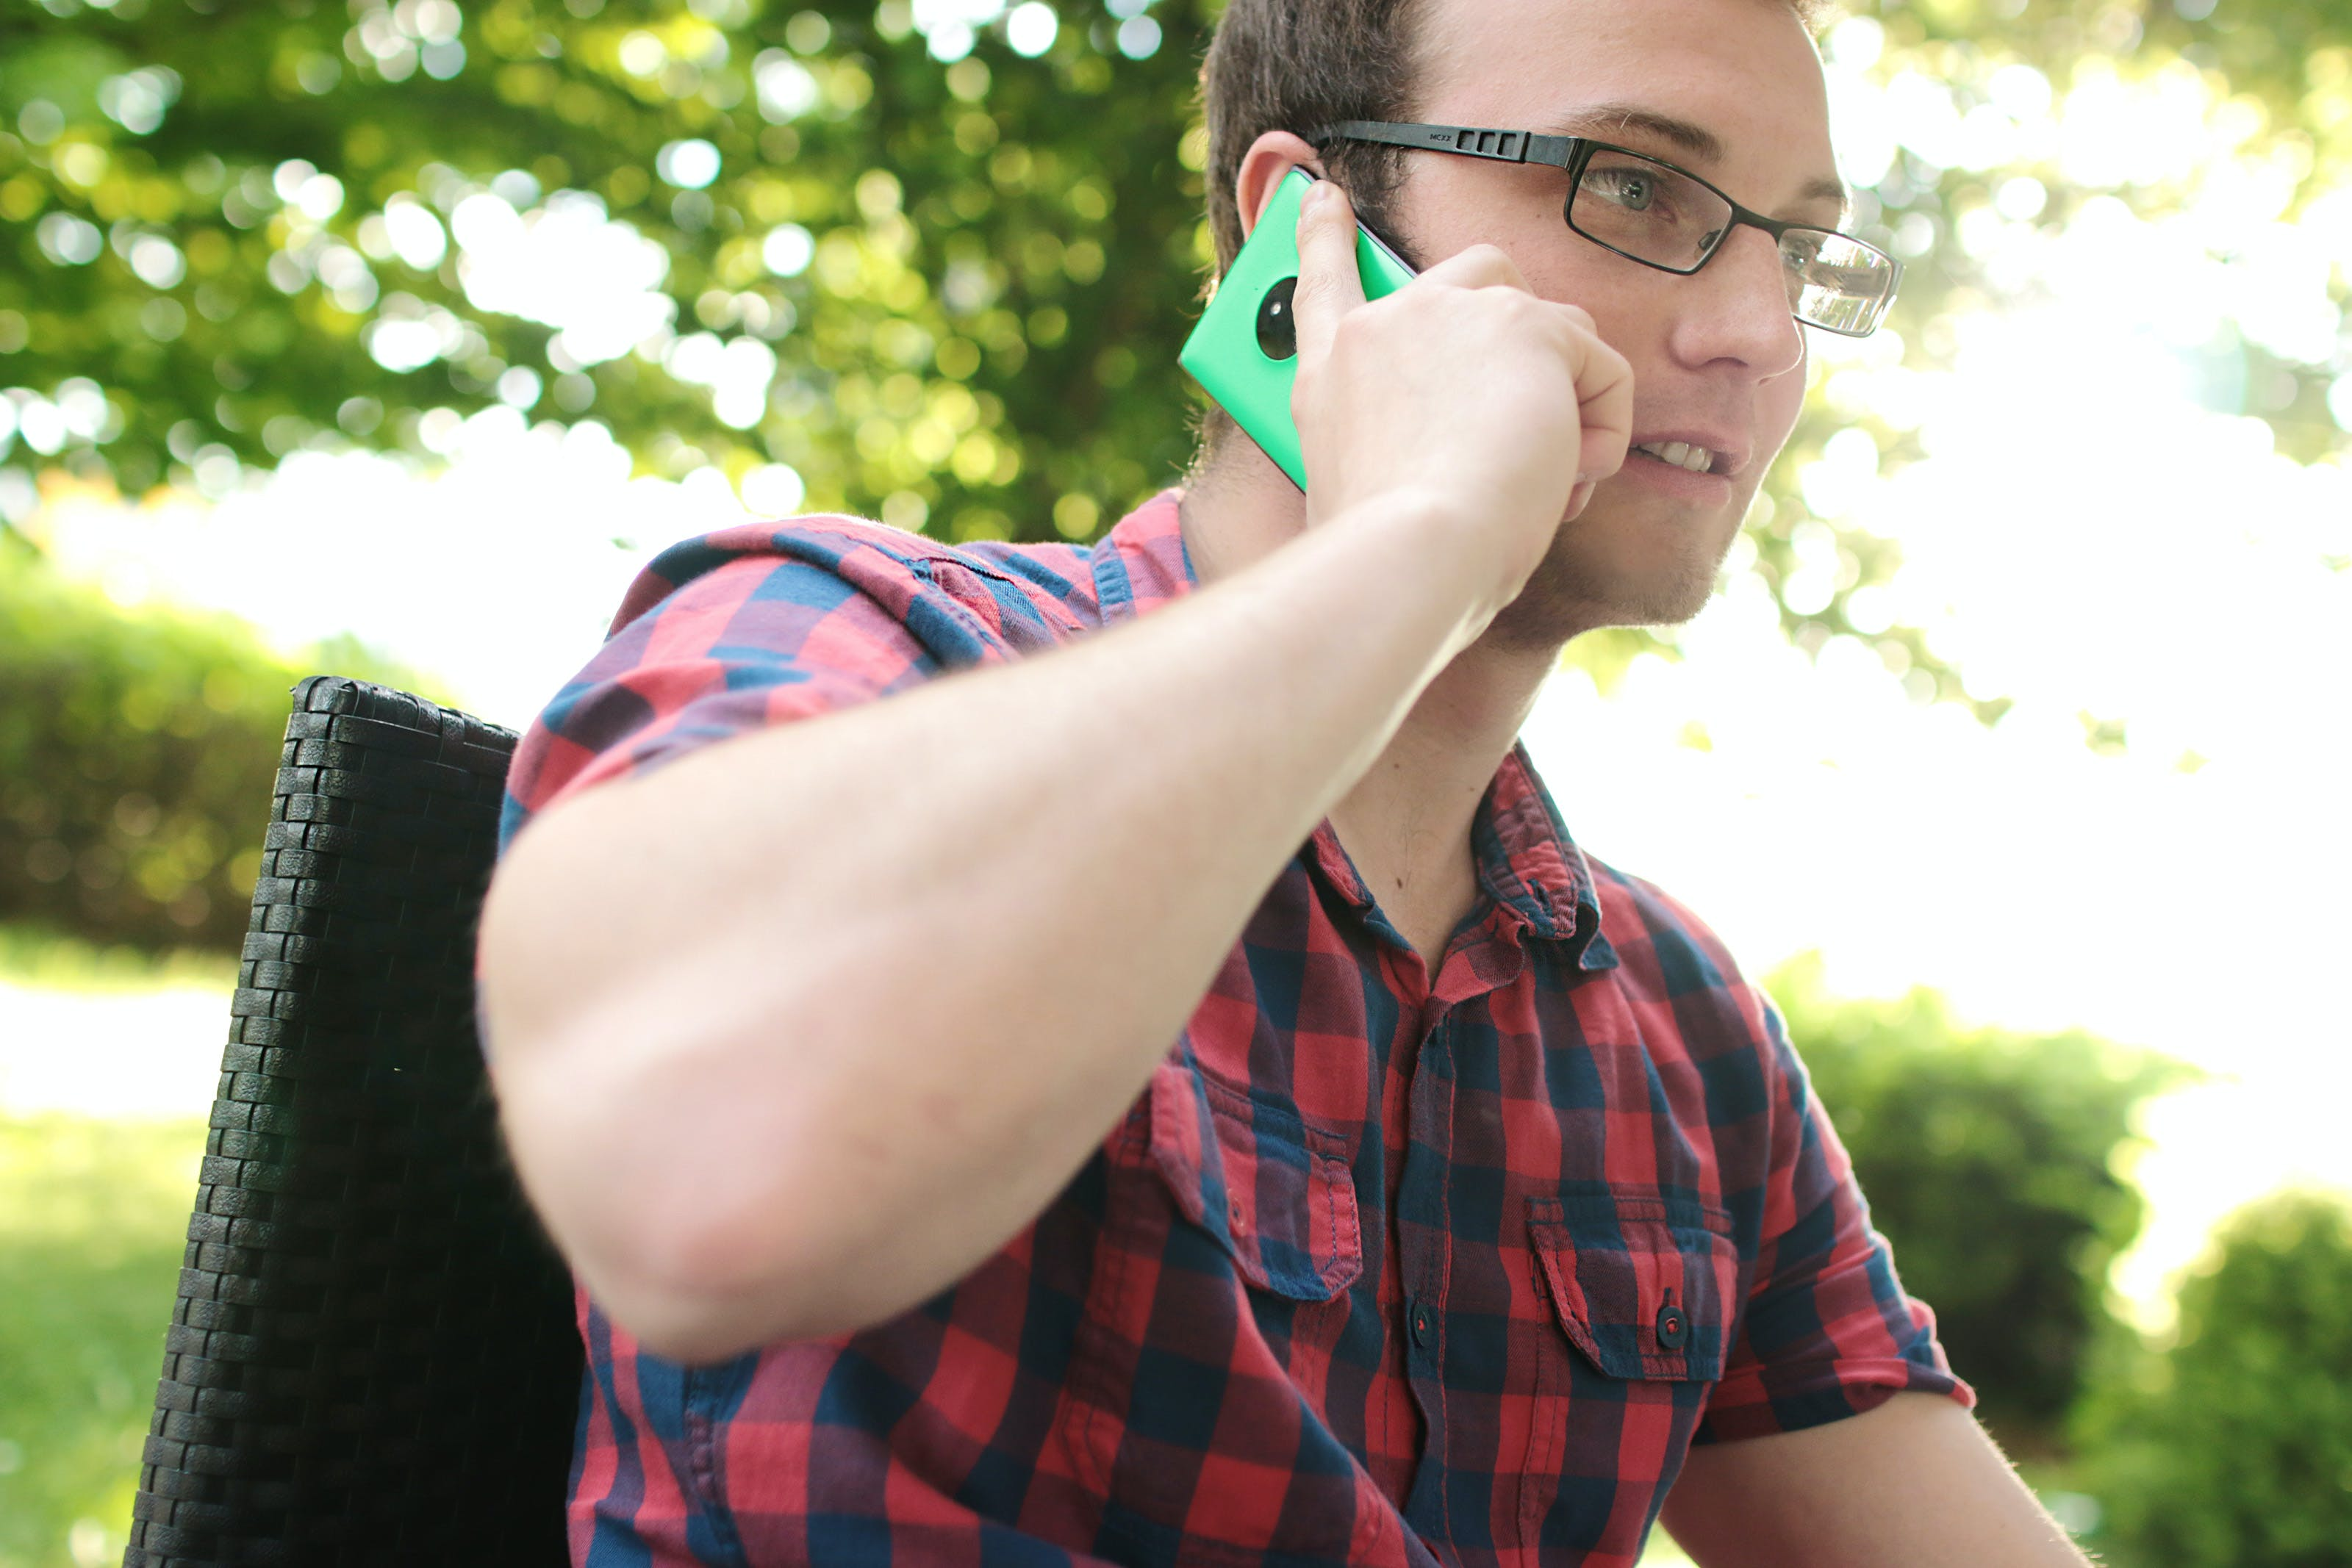 Man Placing His Phone on His Right Ear